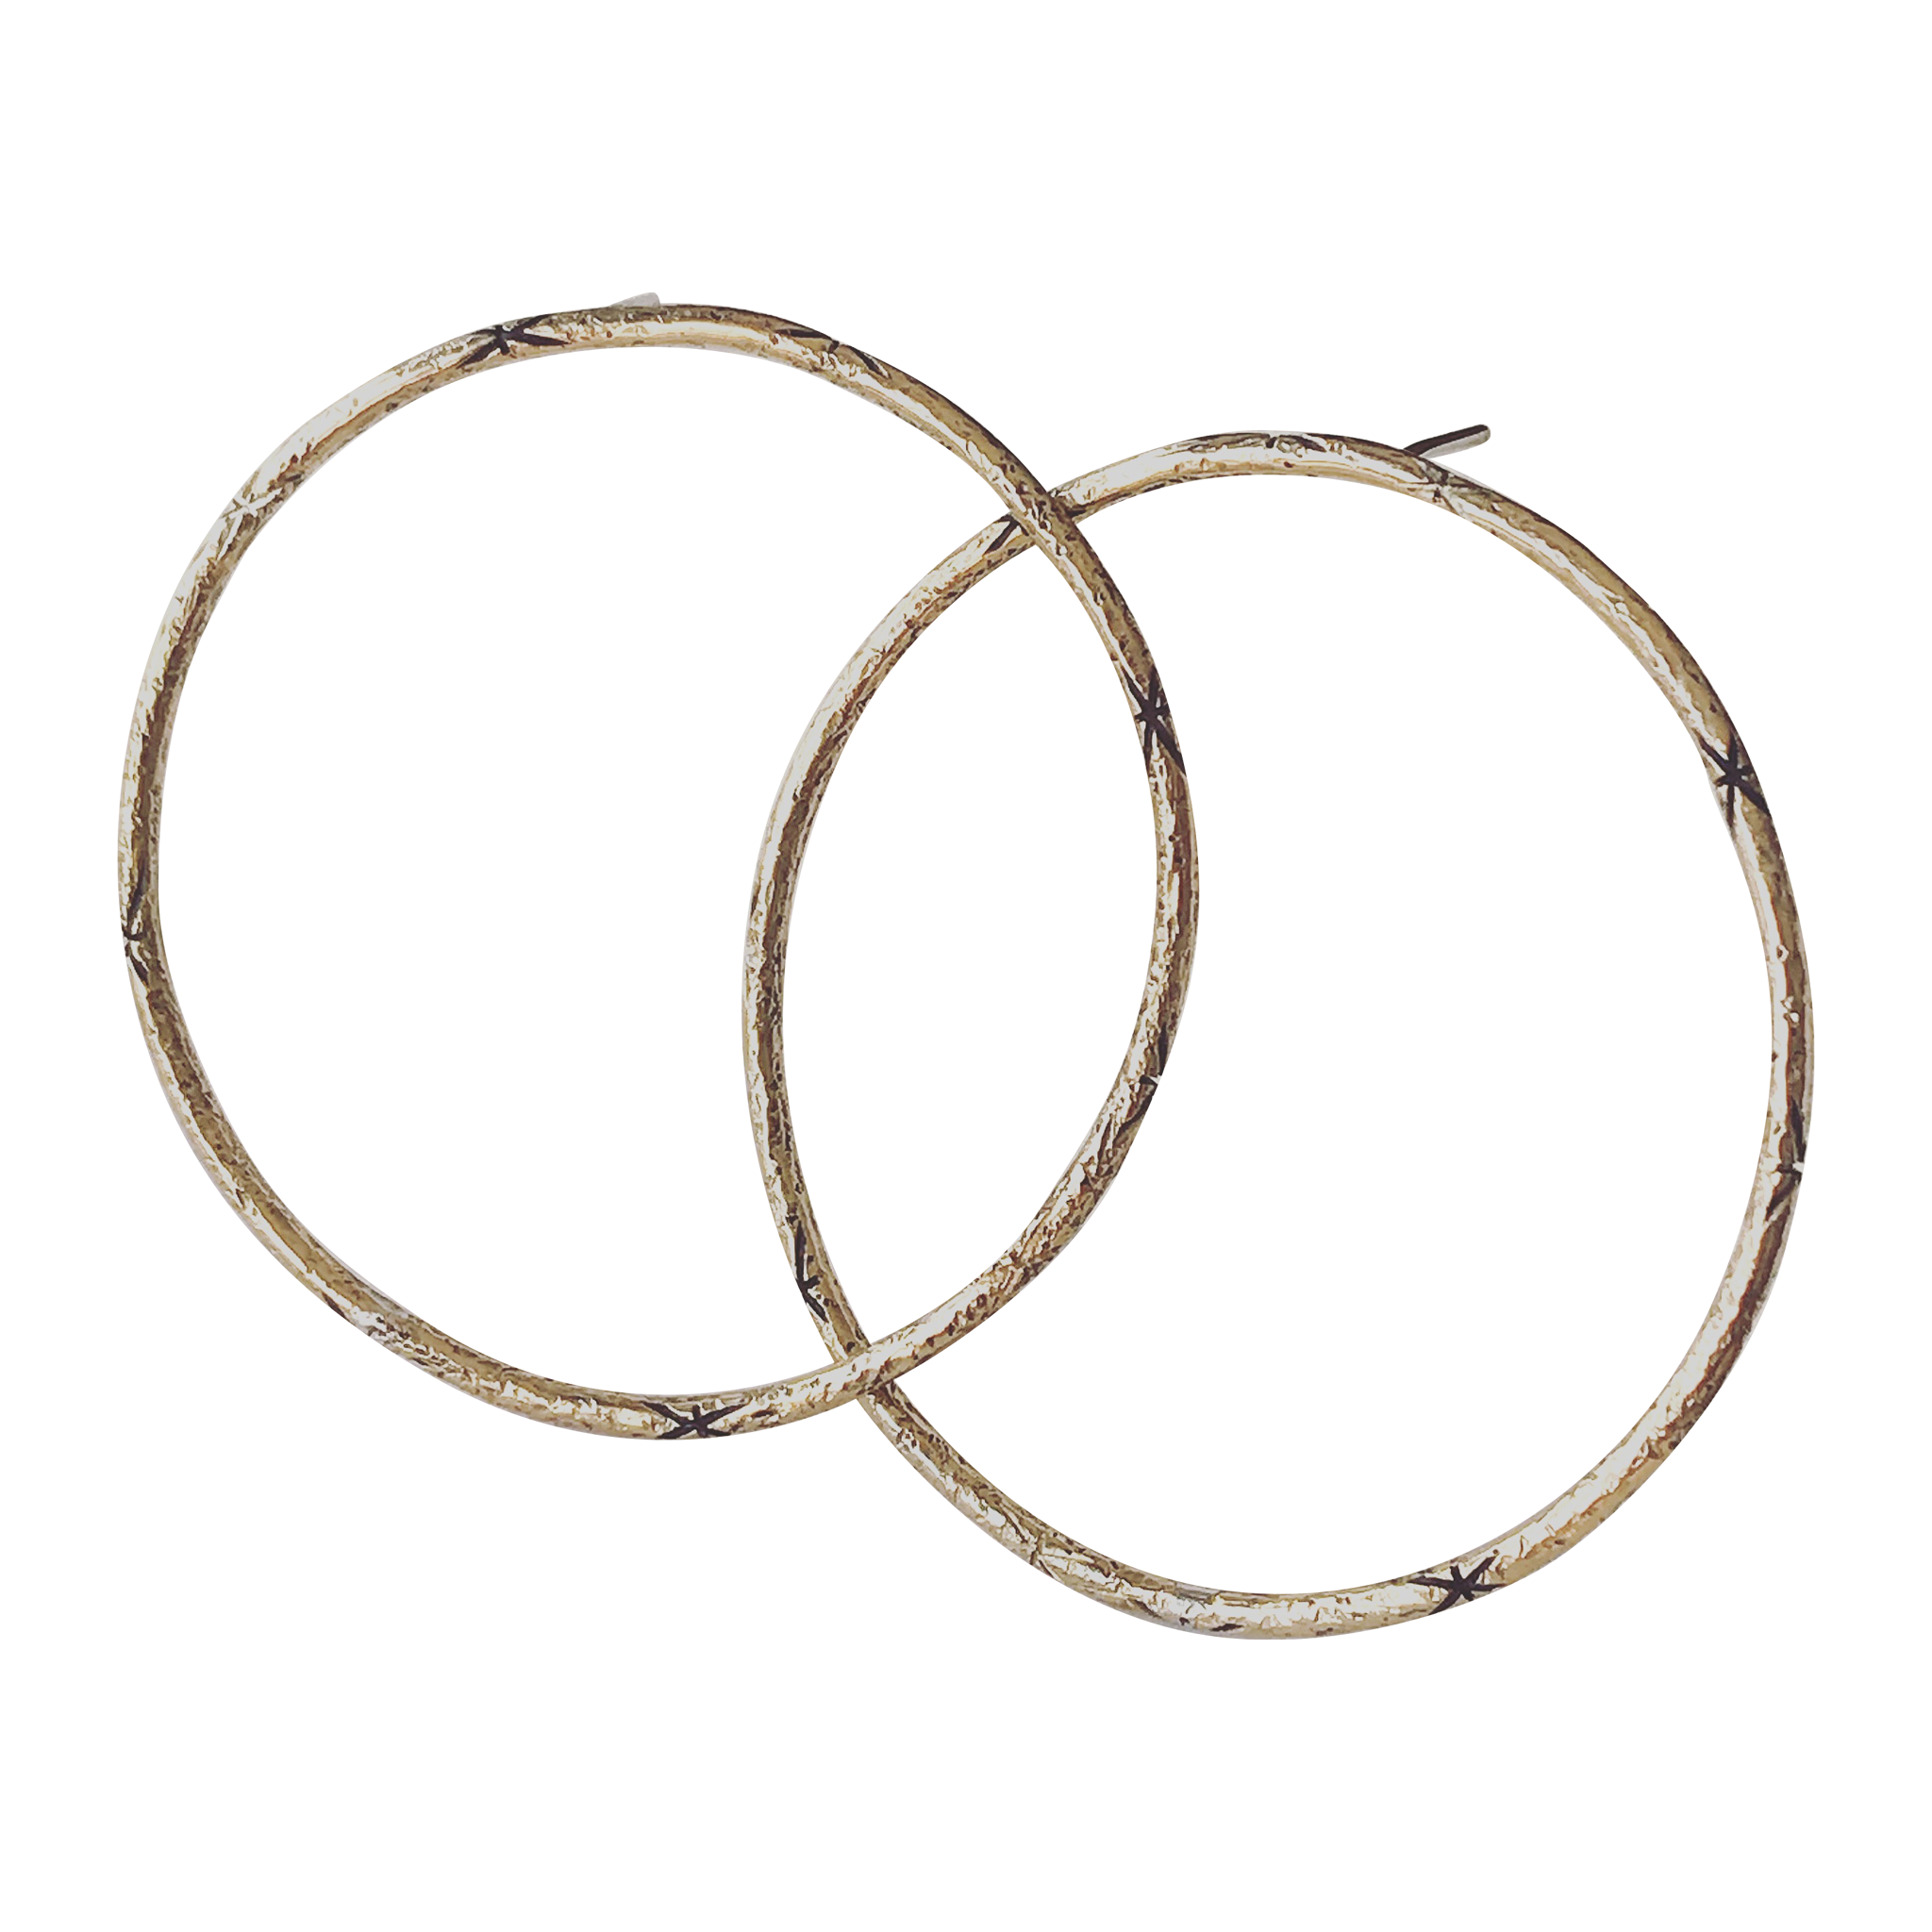 Starlit steady hoop earring